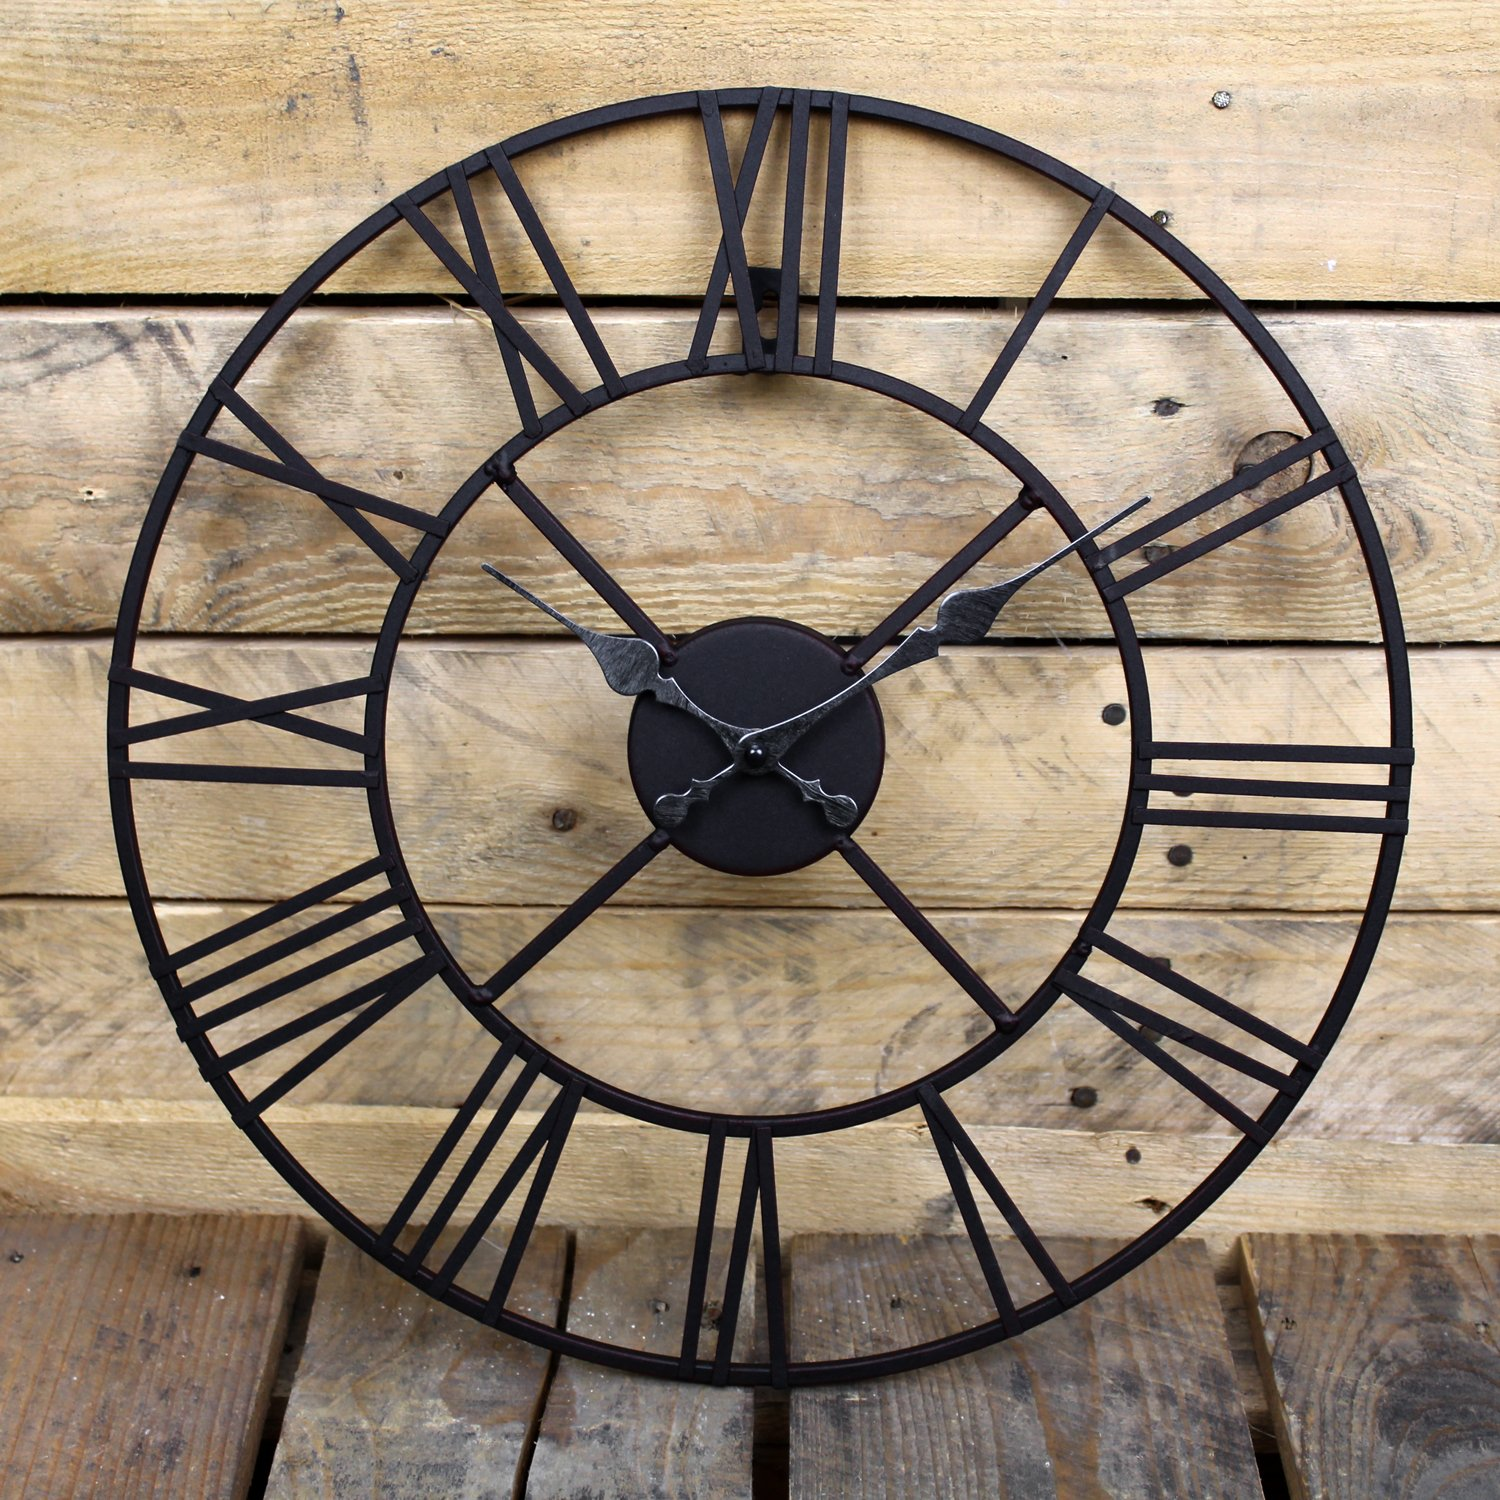 Amazon stunning metal roman numeral clock black iron by amazon stunning metal roman numeral clock black iron by kitchen clocks and wall clocks kitchen dining amipublicfo Image collections